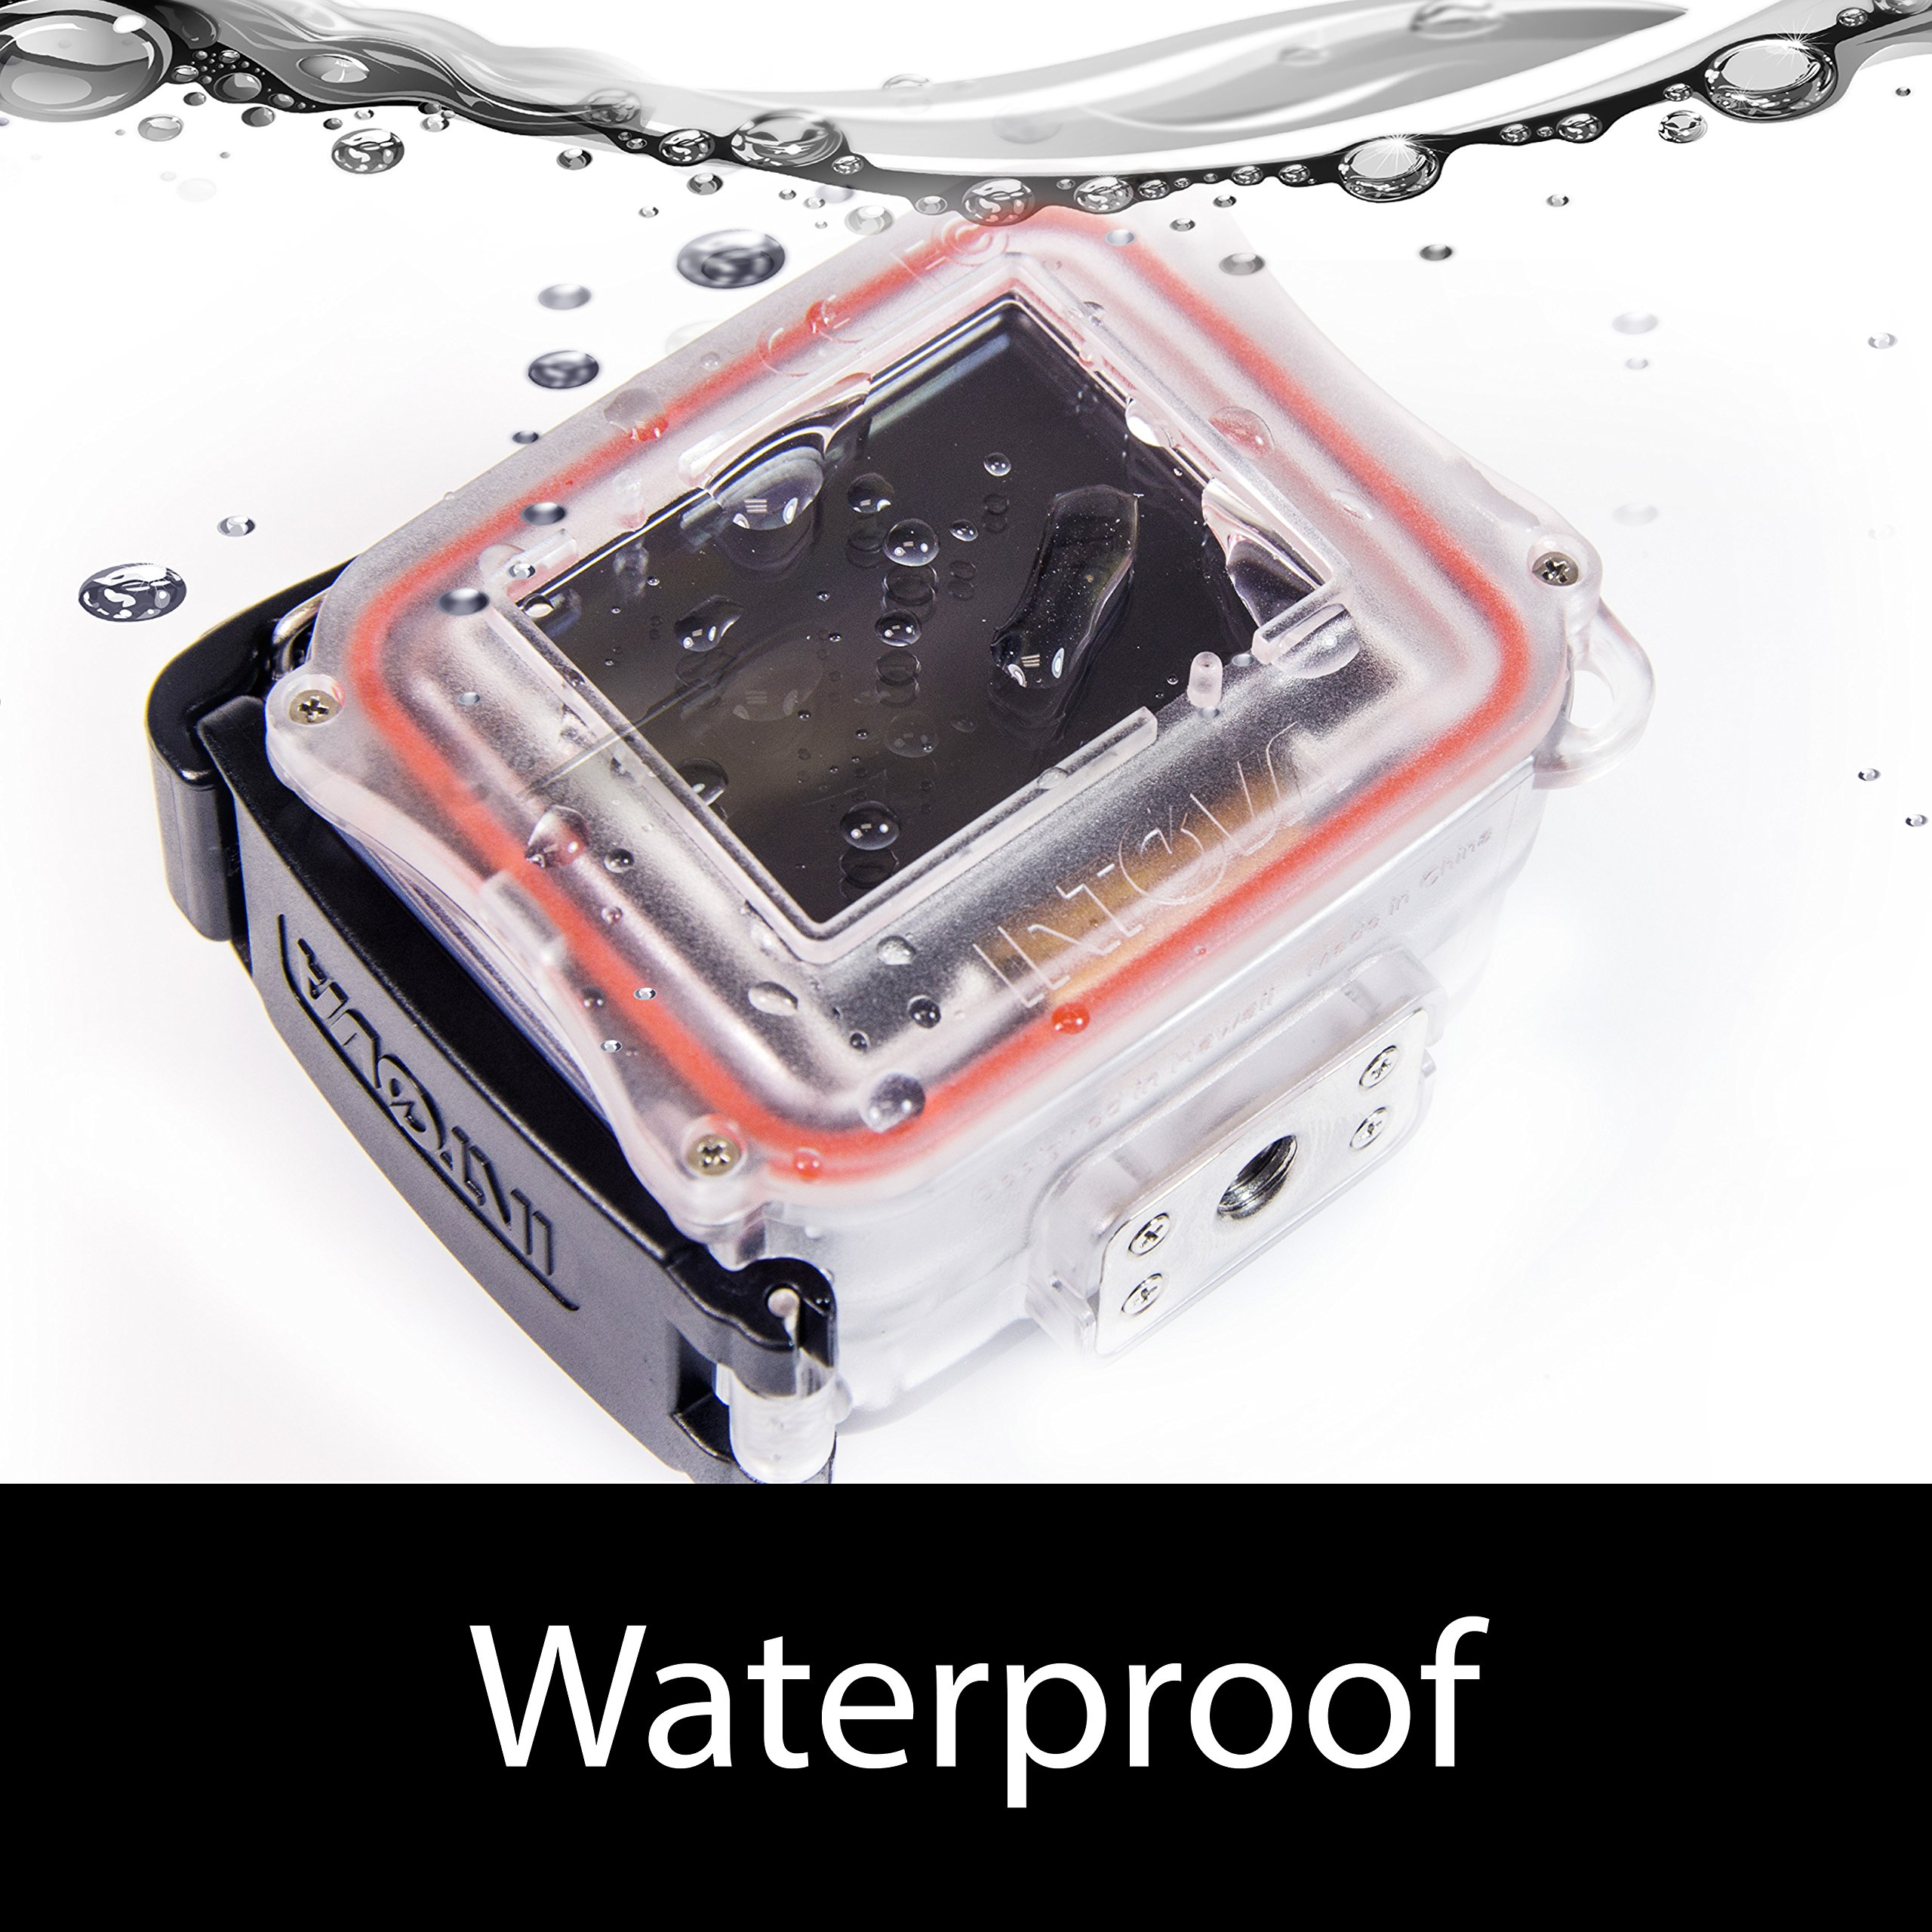 Intova HD2 Waterproof 8MP Action Camera with Built-in 150-Lumen Light and Remote Control by Intova (Image #2)